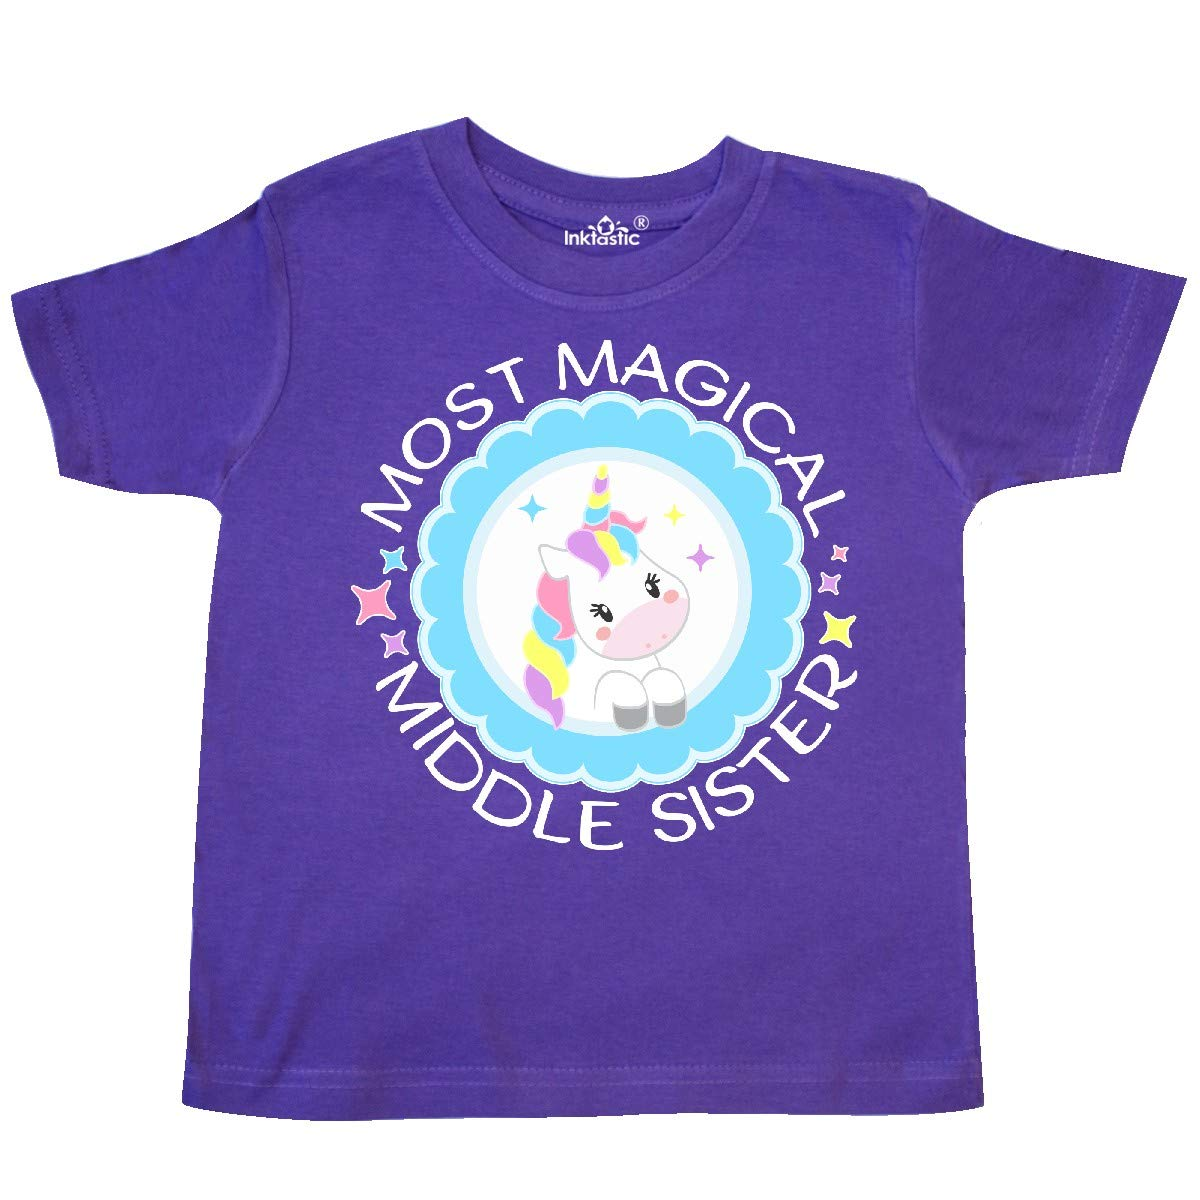 Cute Unicorn Badge Toddler T-Shirt inktastic Most Magical Middle Sister